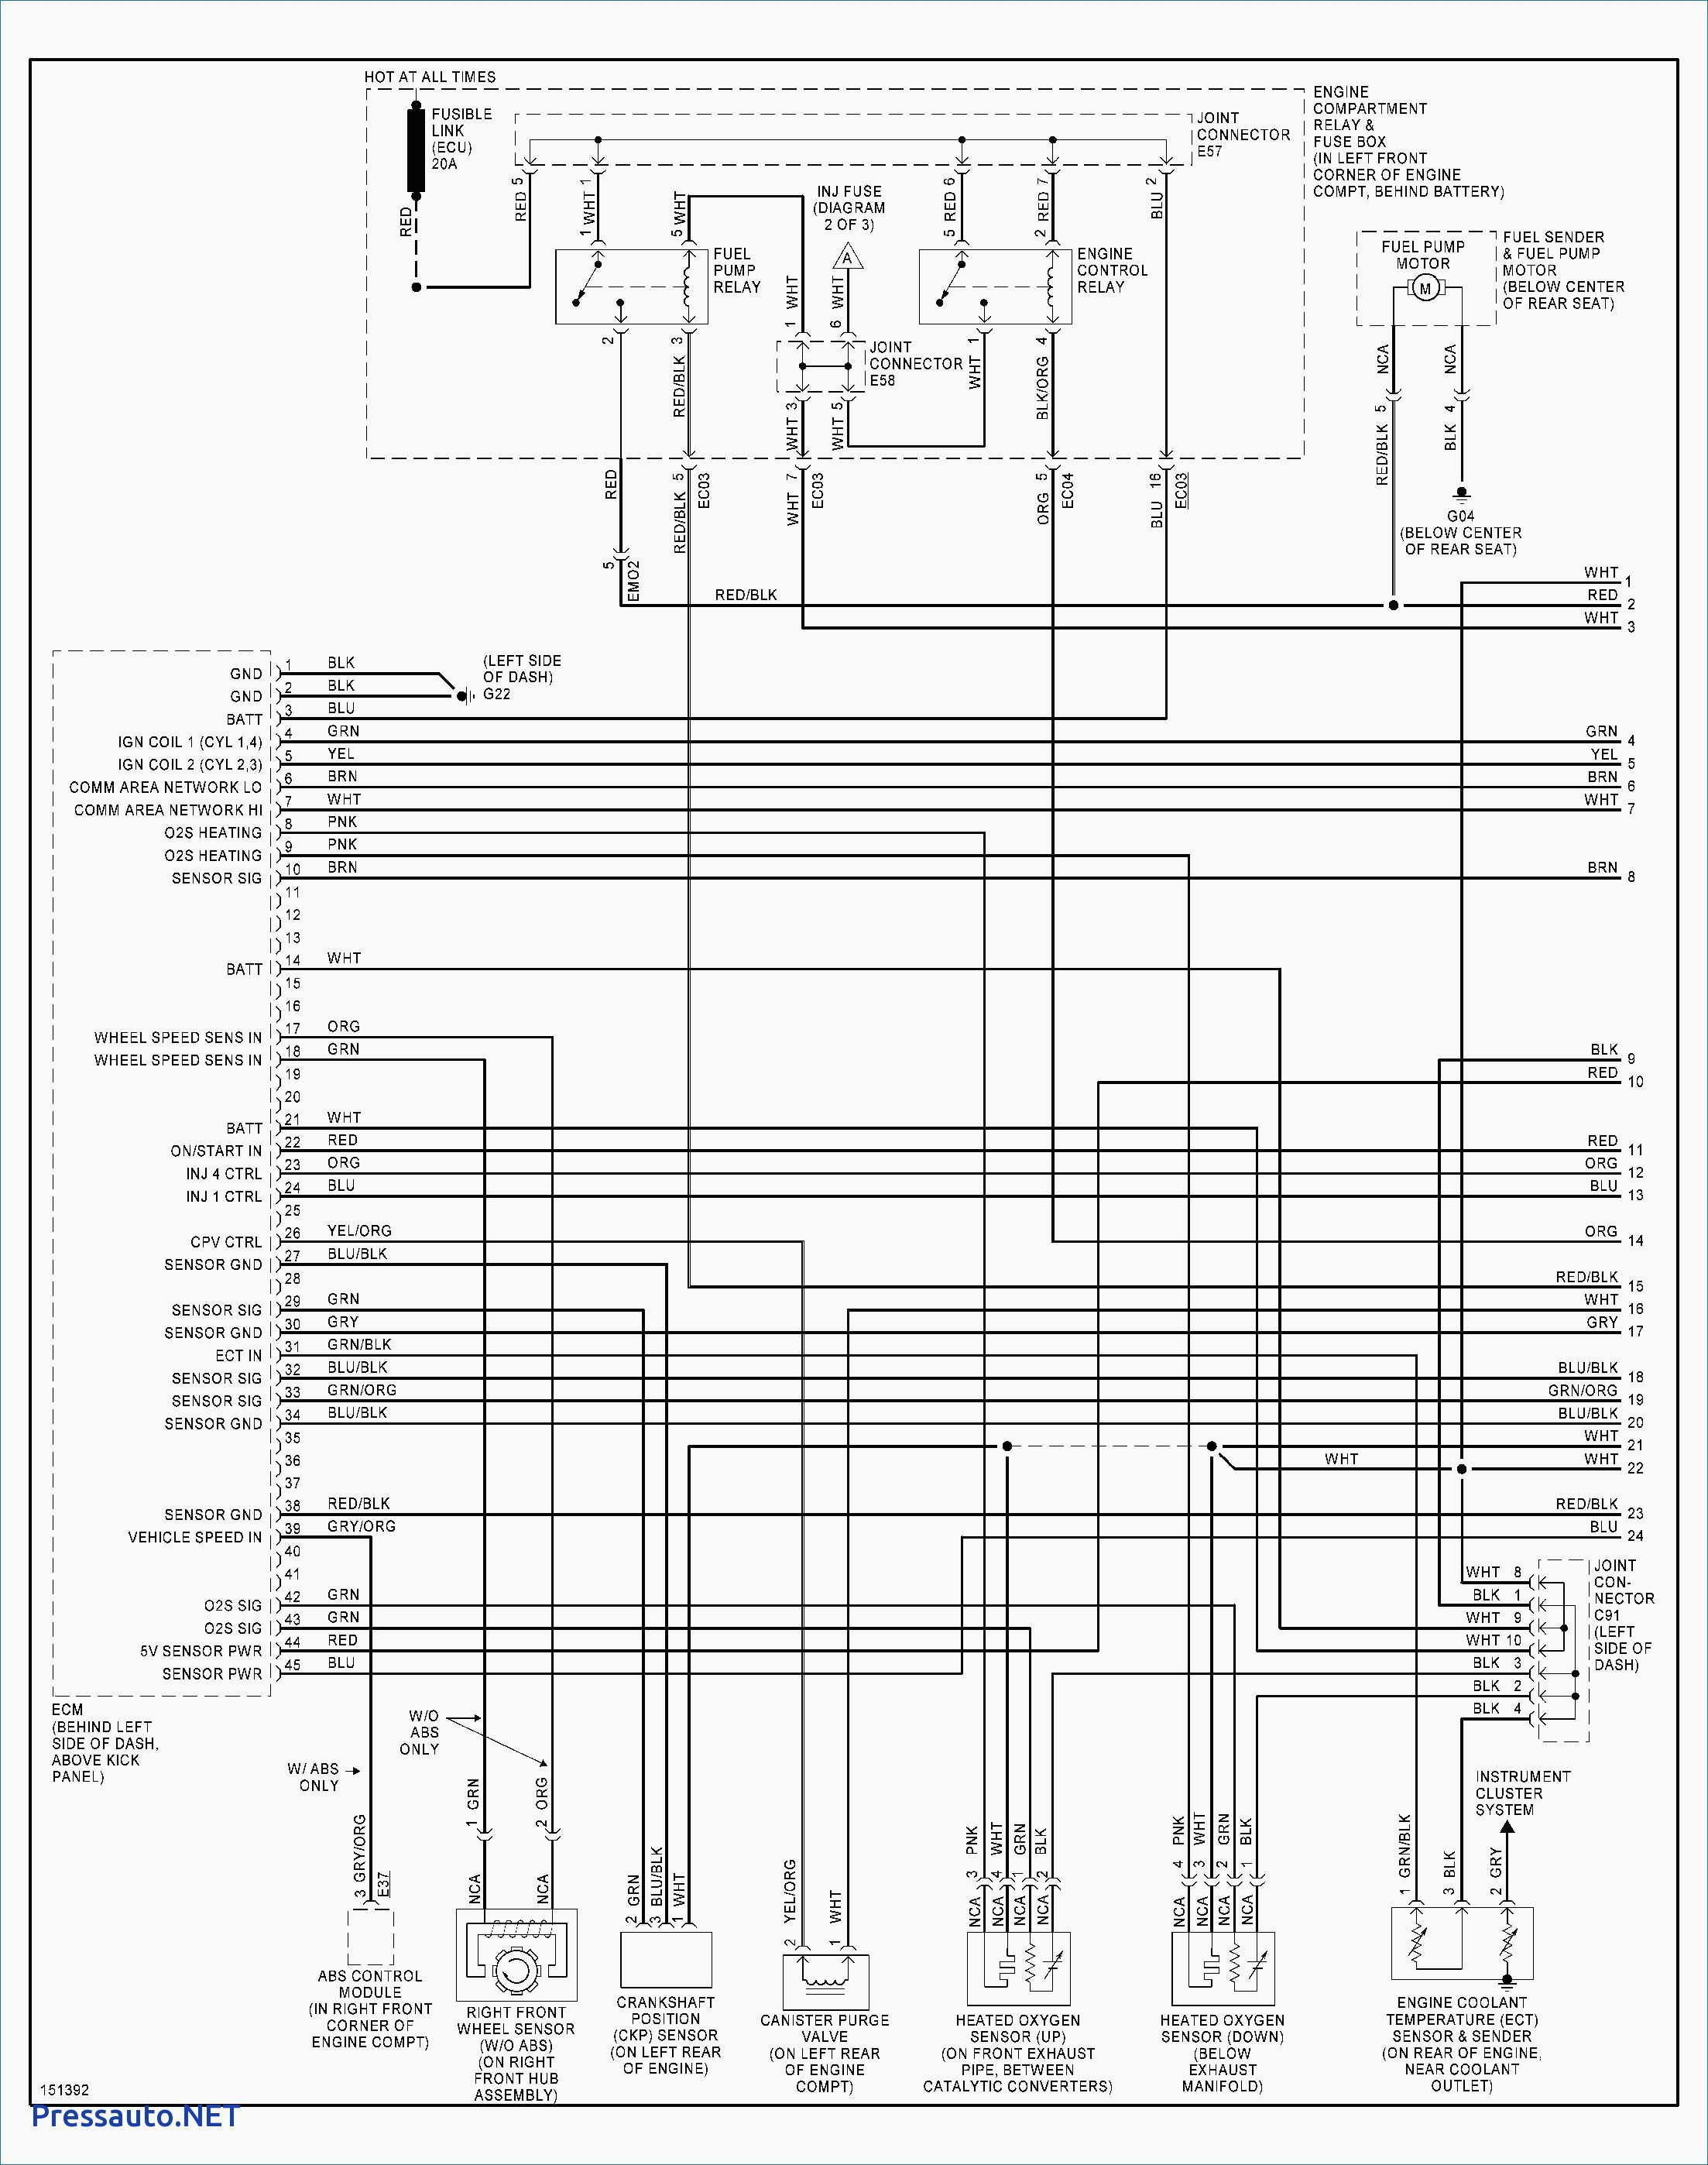 Hyundai santa fe engine diagram hyundai tiburon radio wiring diagram book  hyundai santa jpg 2206x2796 2003 · Download Image